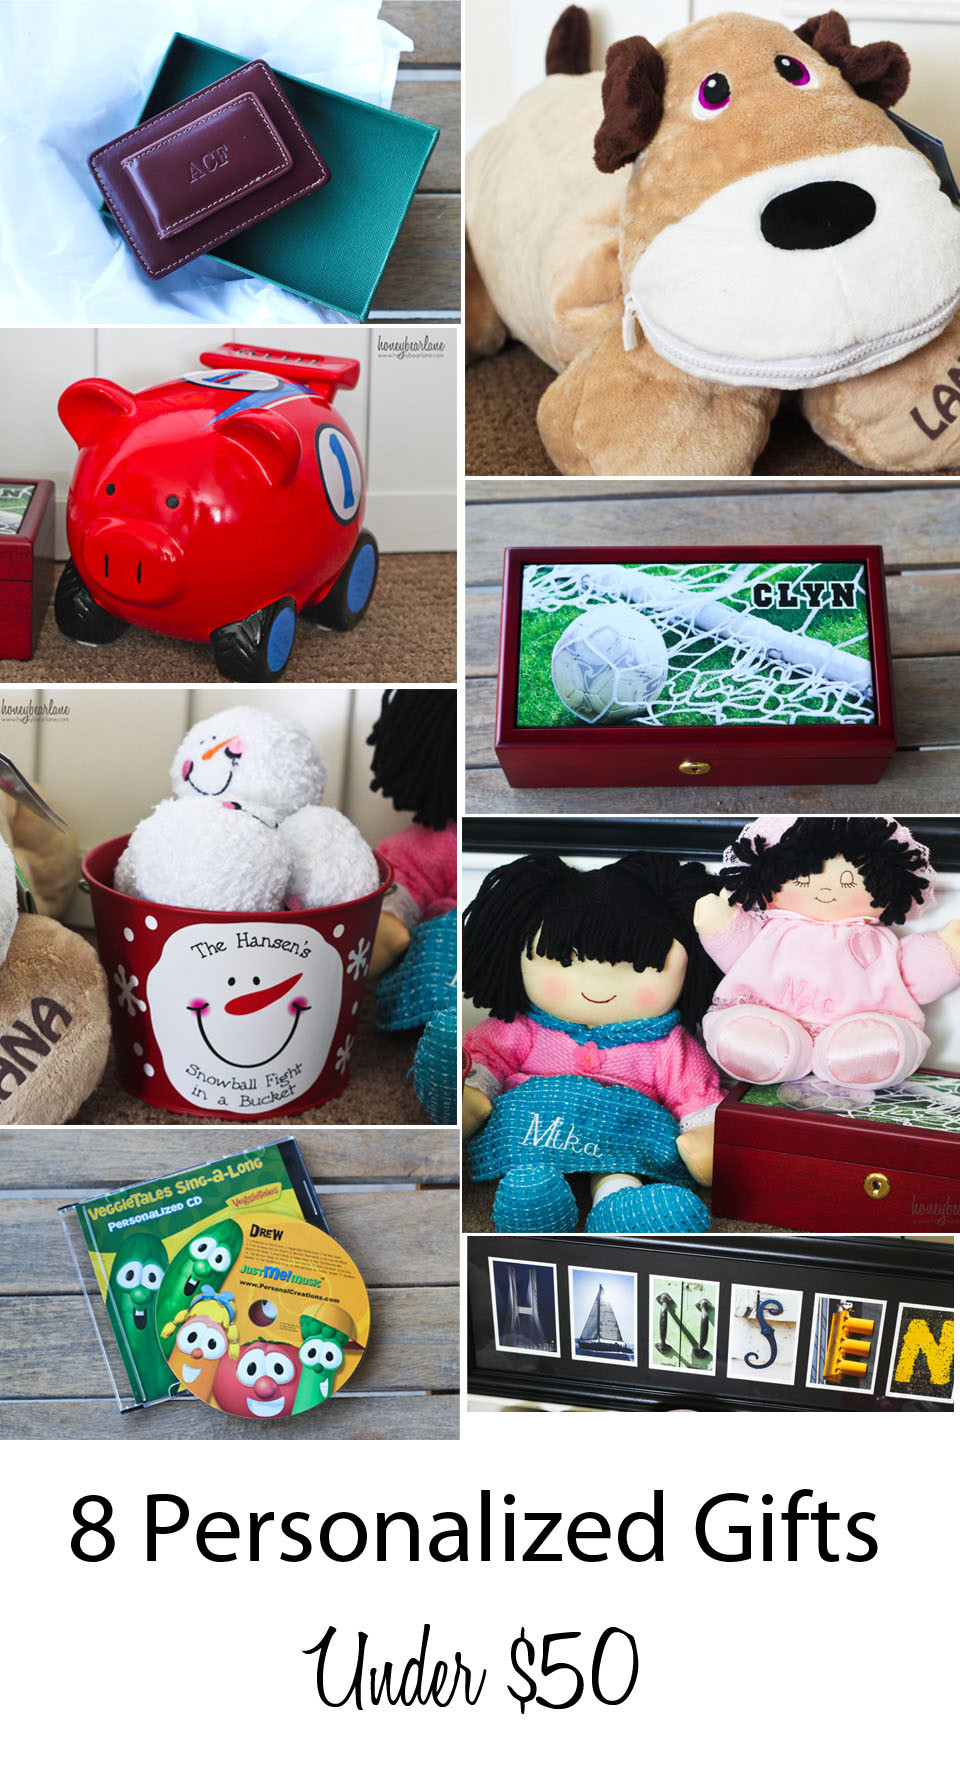 Best ideas about Gift Exchange Ideas $50 . Save or Pin 8 Personalized Gift Ideas Under $50 Honeybear Lane Now.